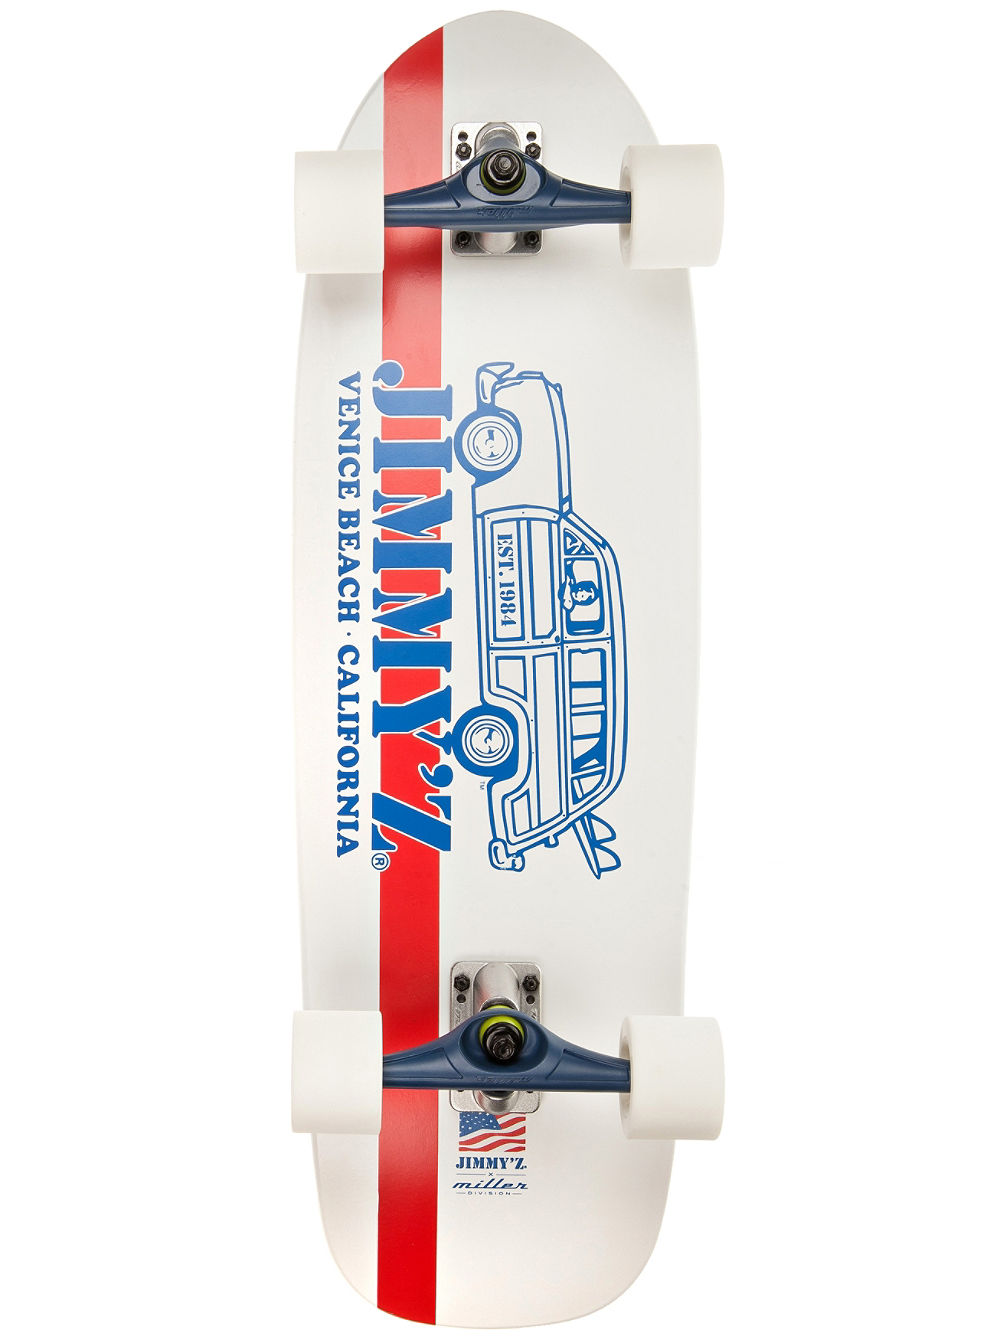 Jimmy Z Surfskate Complete